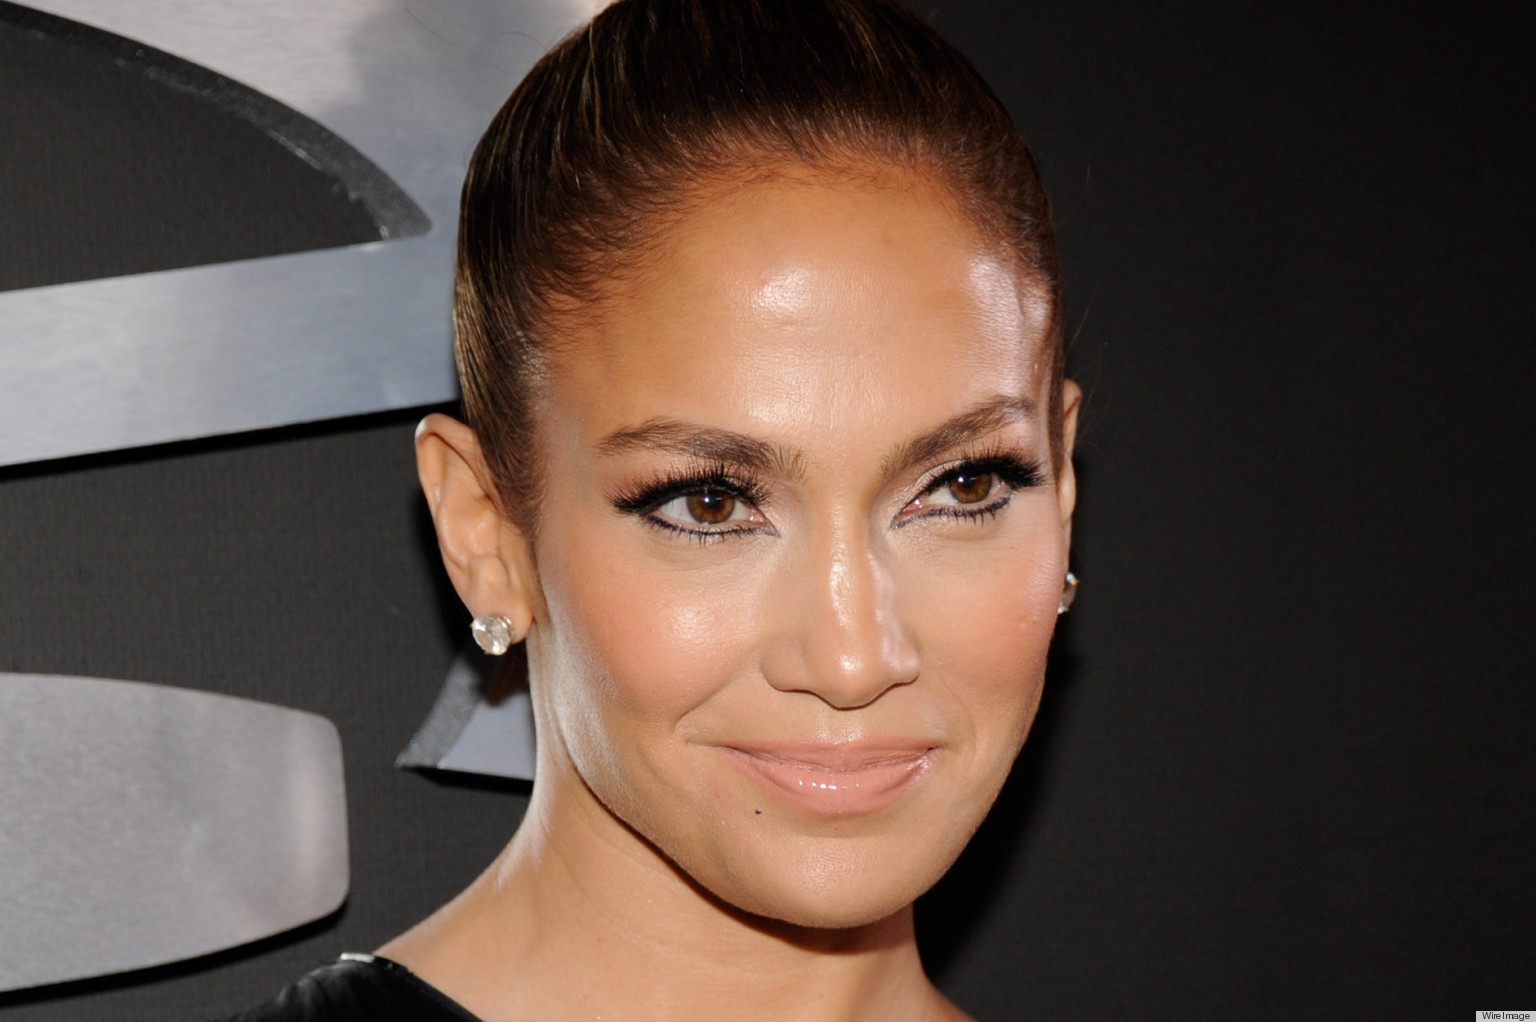 J Lo Goes Simple With Her Makeup For The 2013 Grammys The - Jlo-makeup